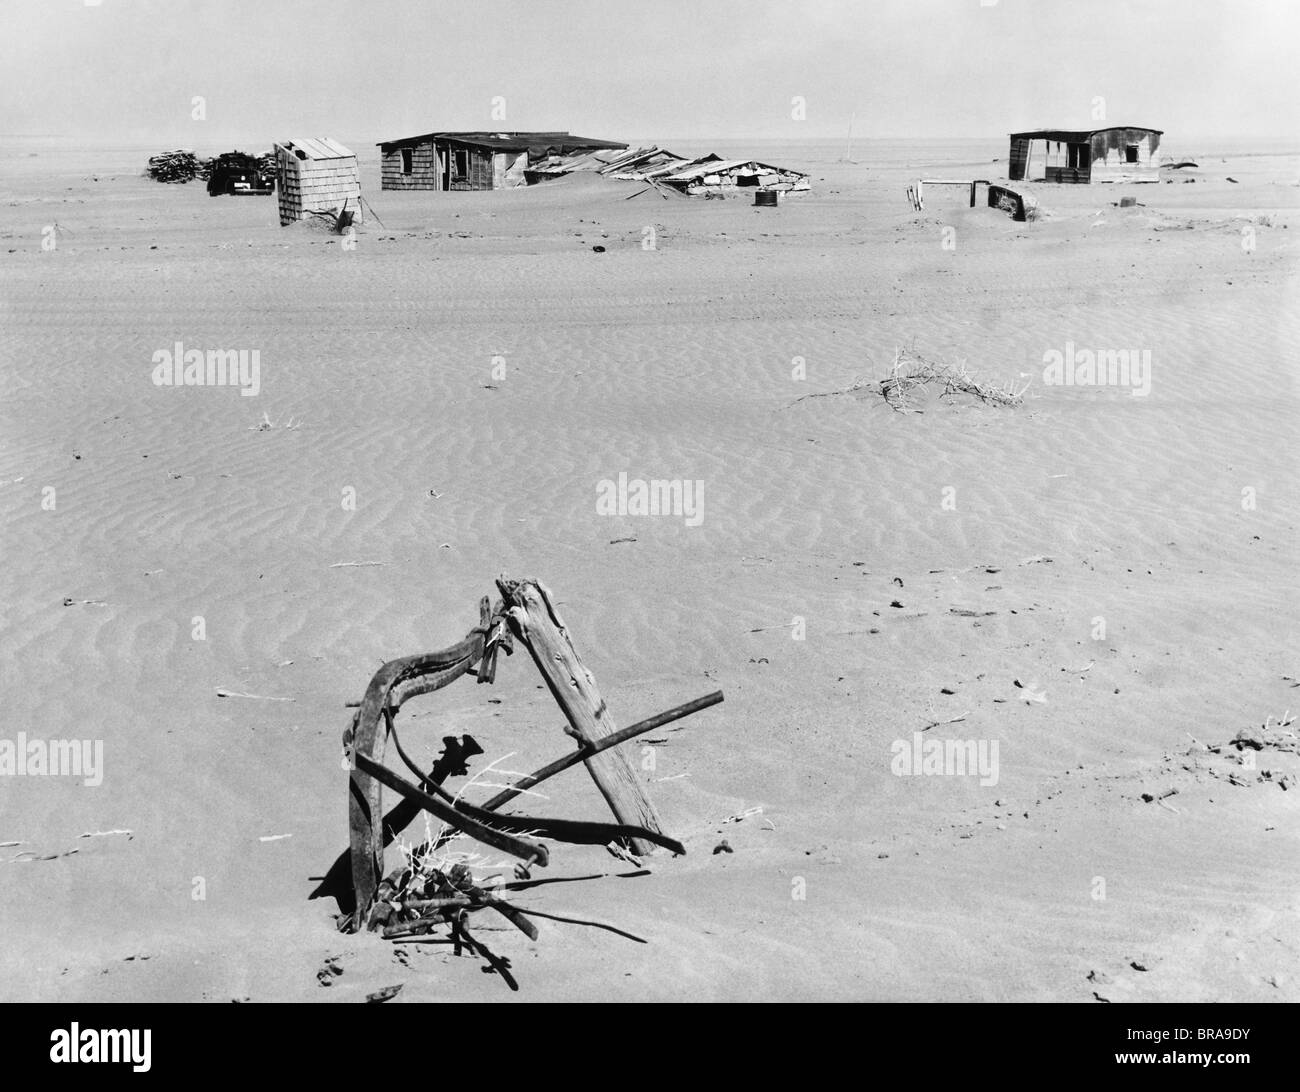 1930s RUINED FARM BEING OVERTAKEN BY ERODED TOPSOIL CREATING A DUST BOWL EFFECT IN AMERICA'S GREAT PLAINS NEAR - Stock Image